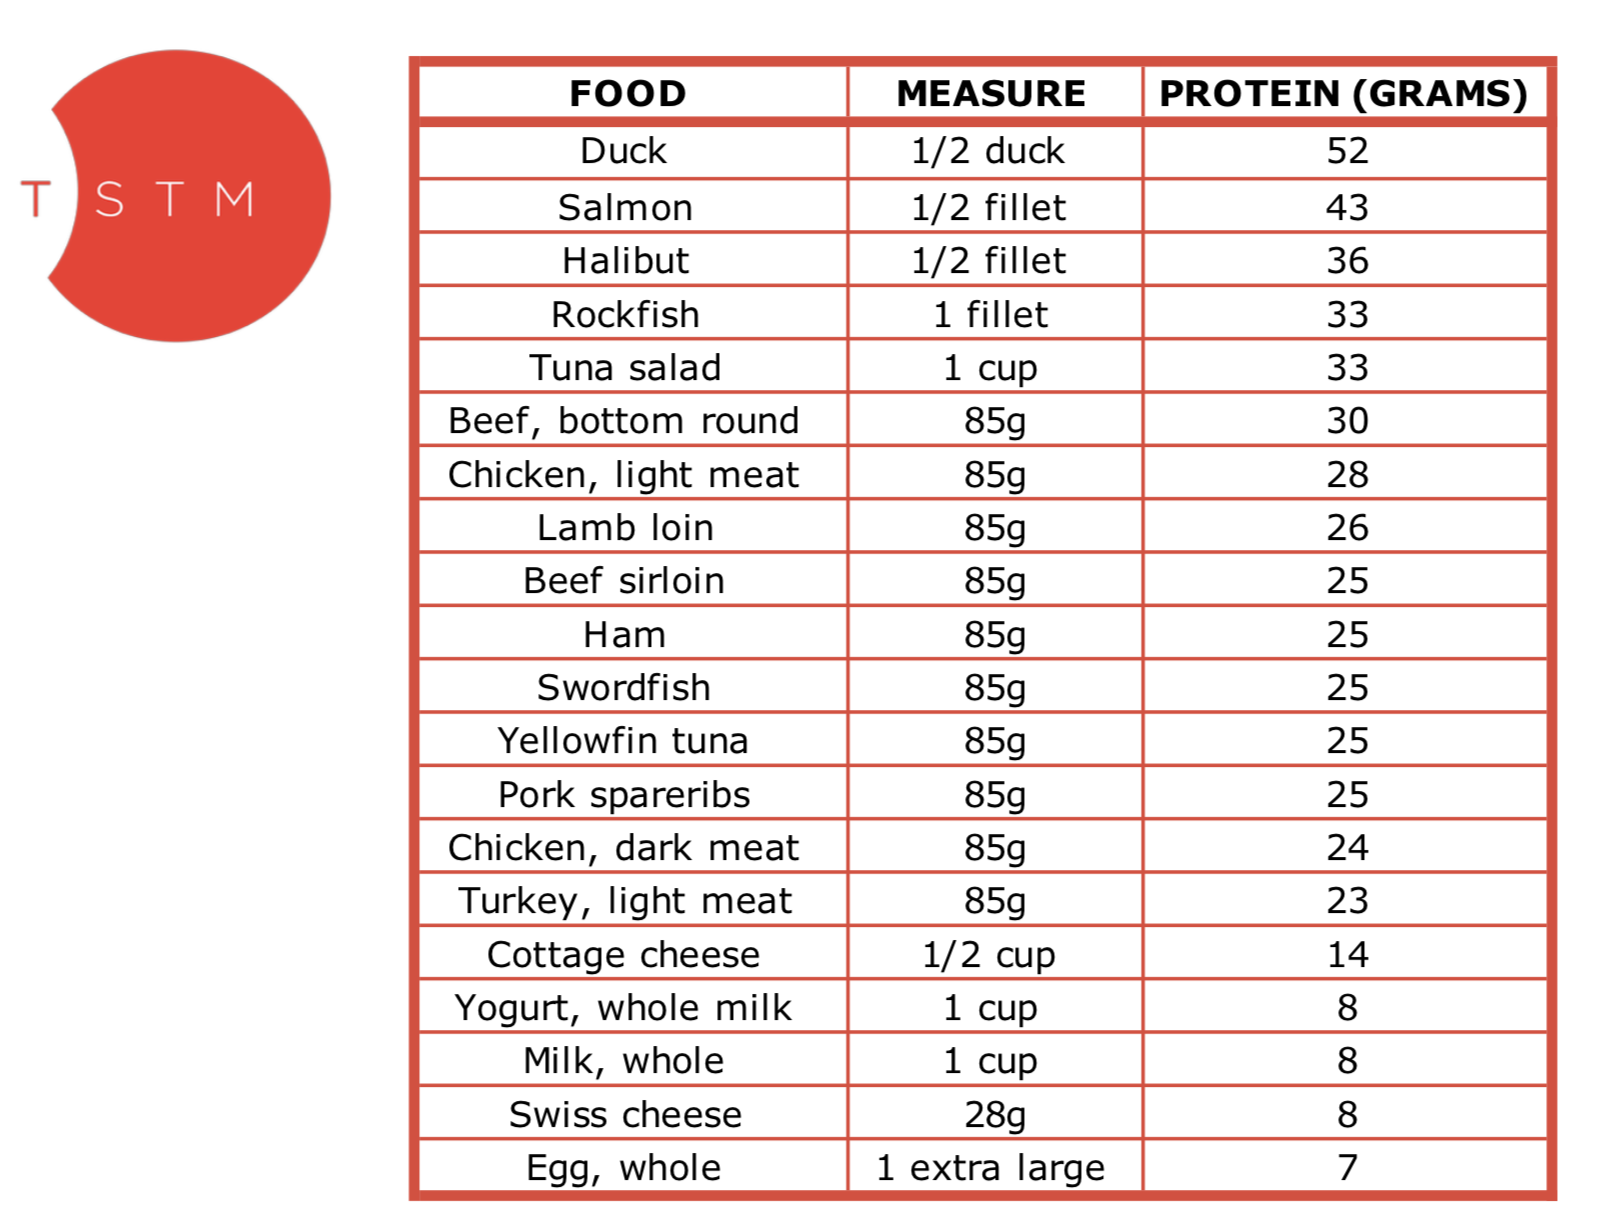 Protein Table.png